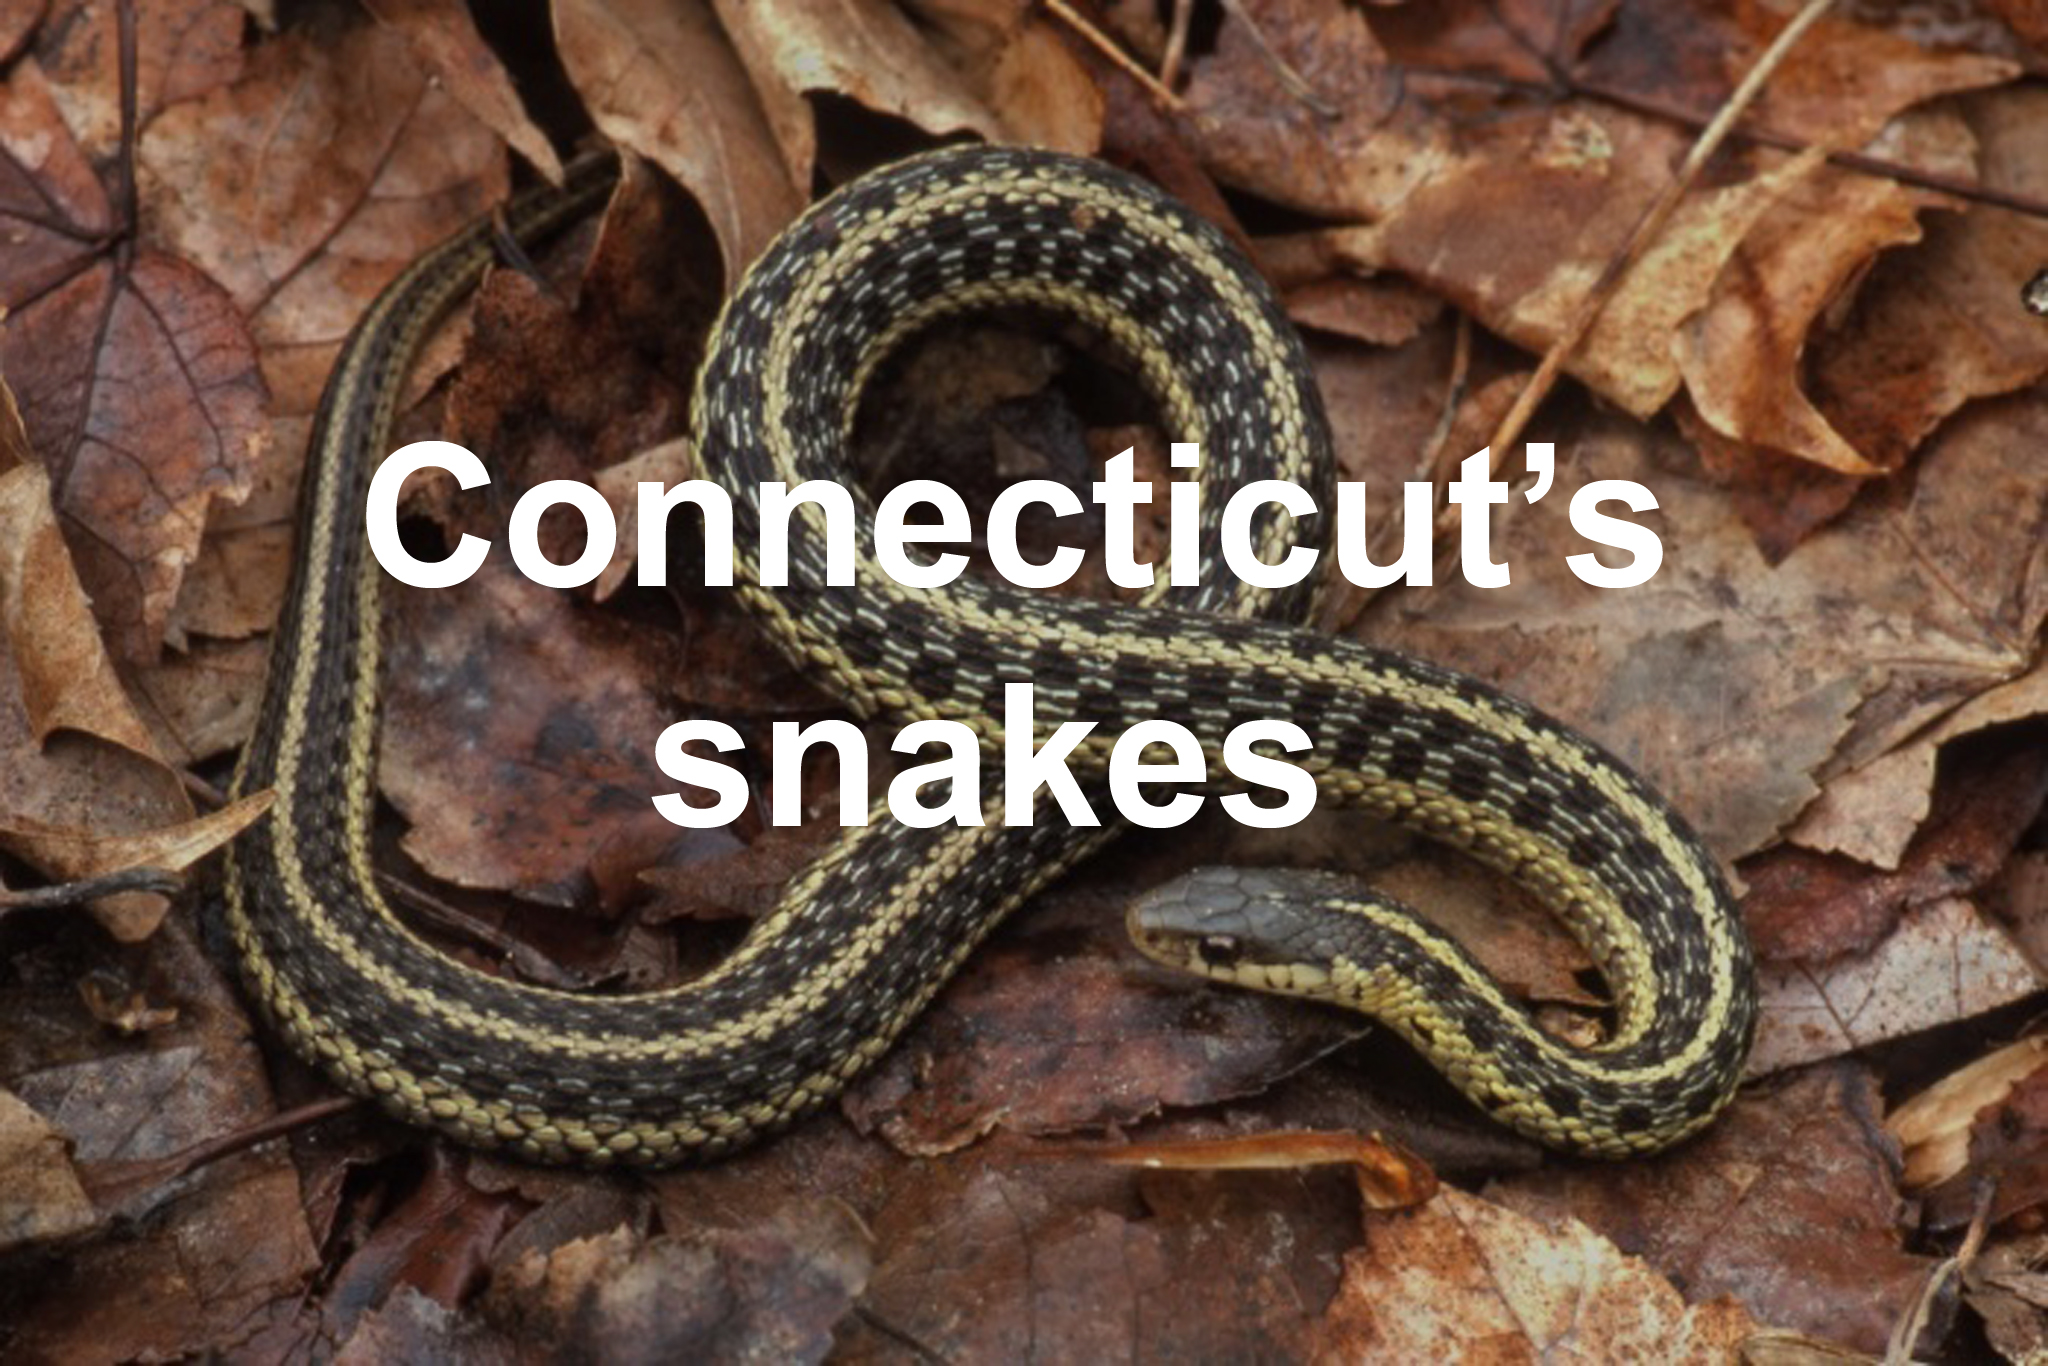 Colleges In Ct >> Connecticut's snakes - Connecticut Post